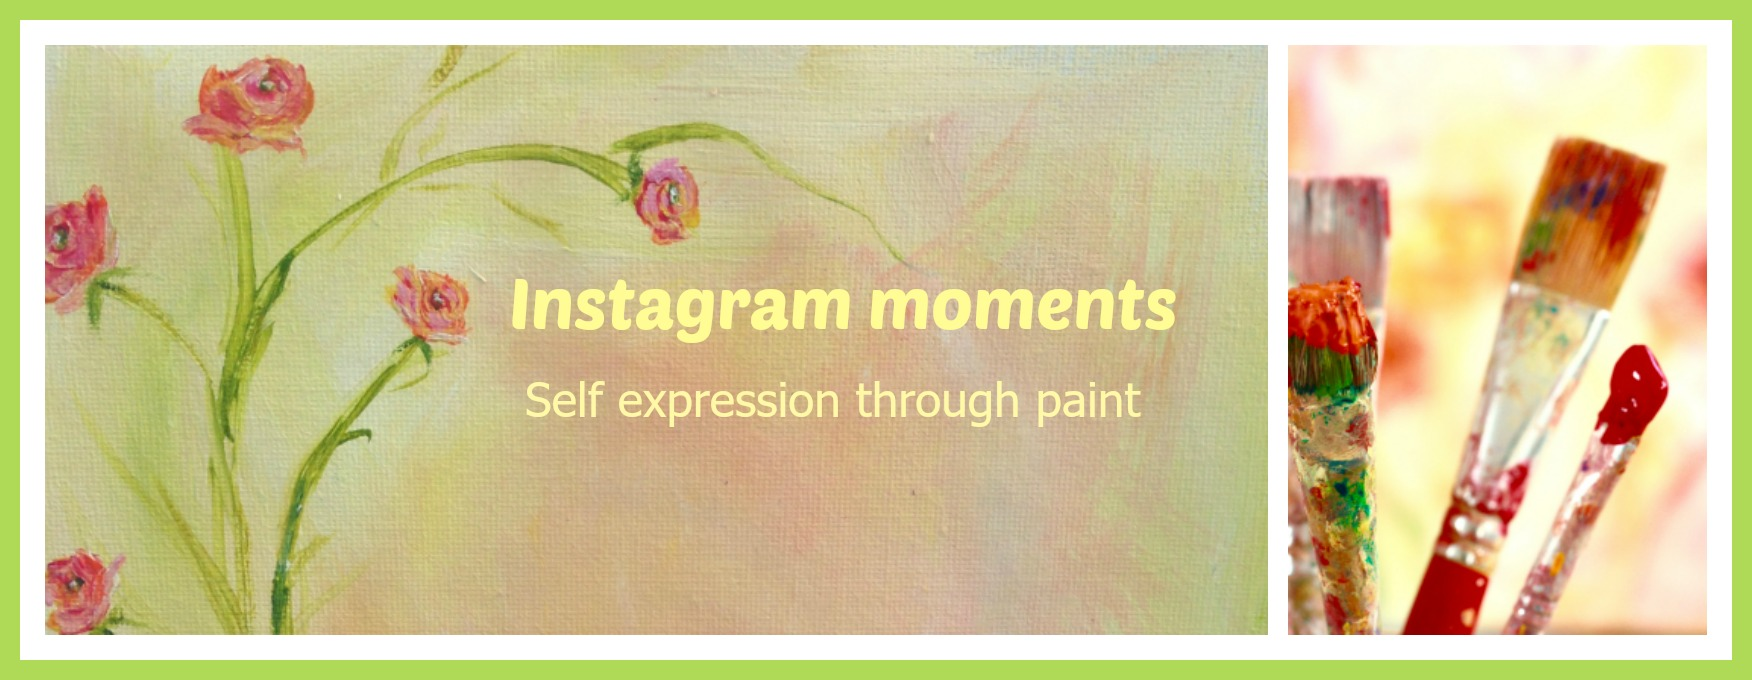 instagram-moments-header-self-expression-through-paintpicmonkey-image